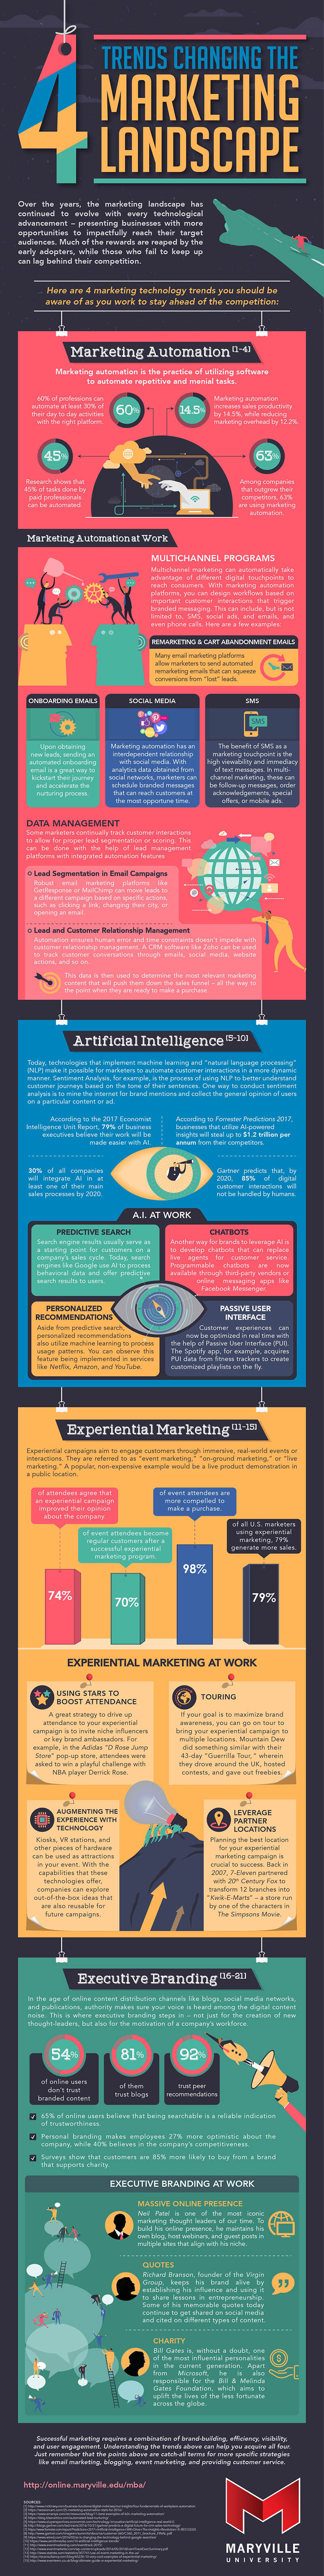 An infographic about four important marketing trends by Maryville University.